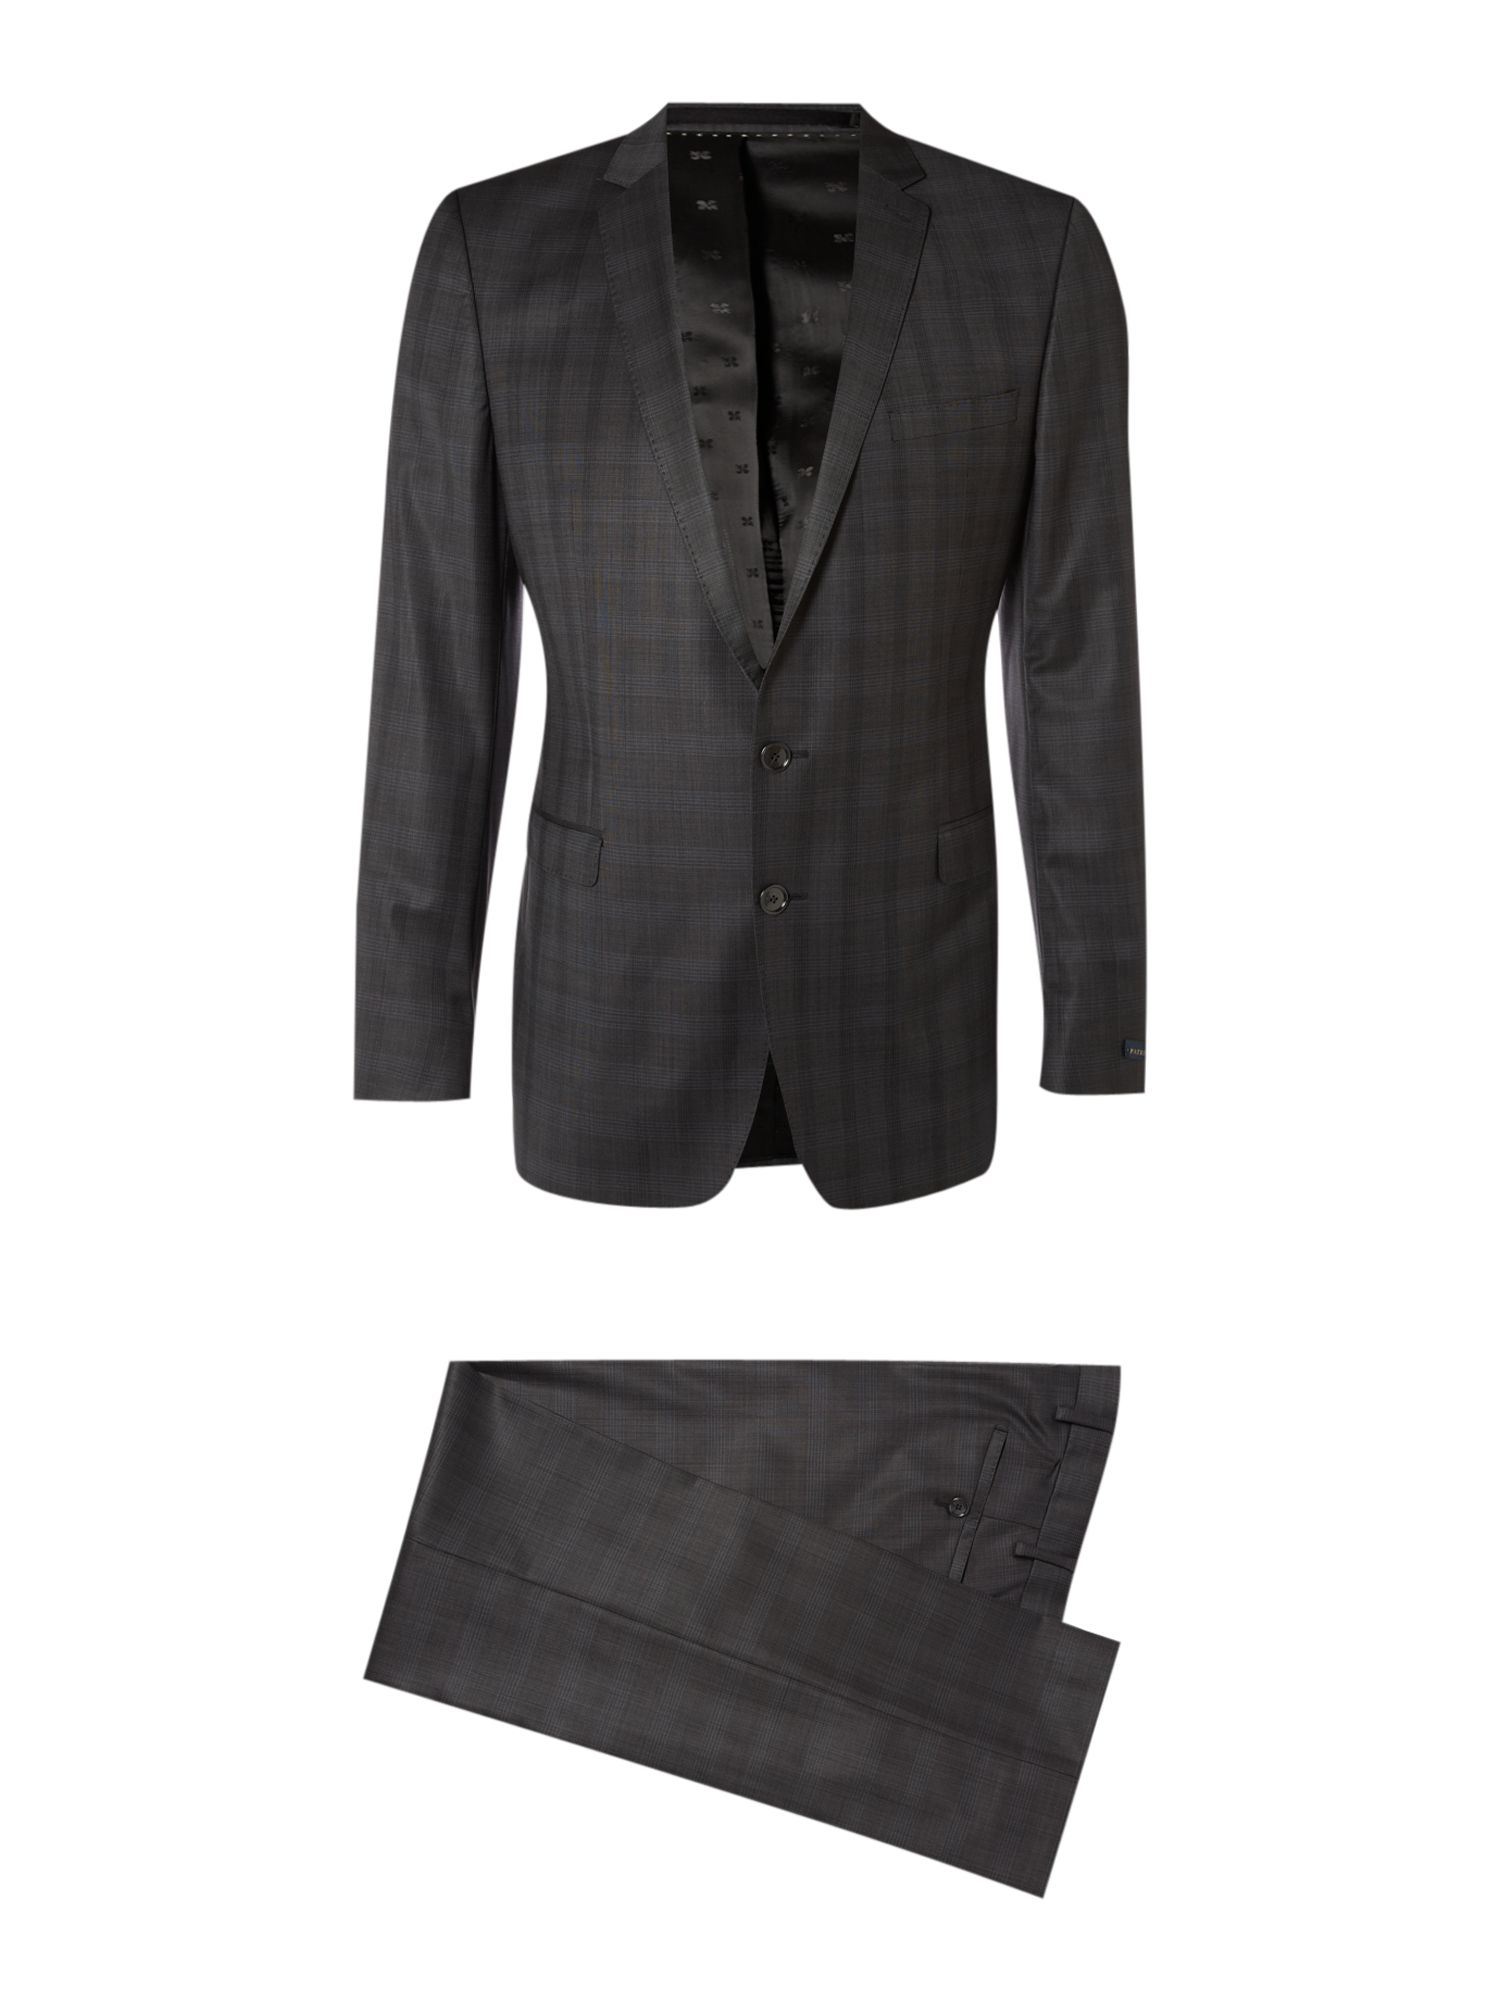 Faint Check formal suit